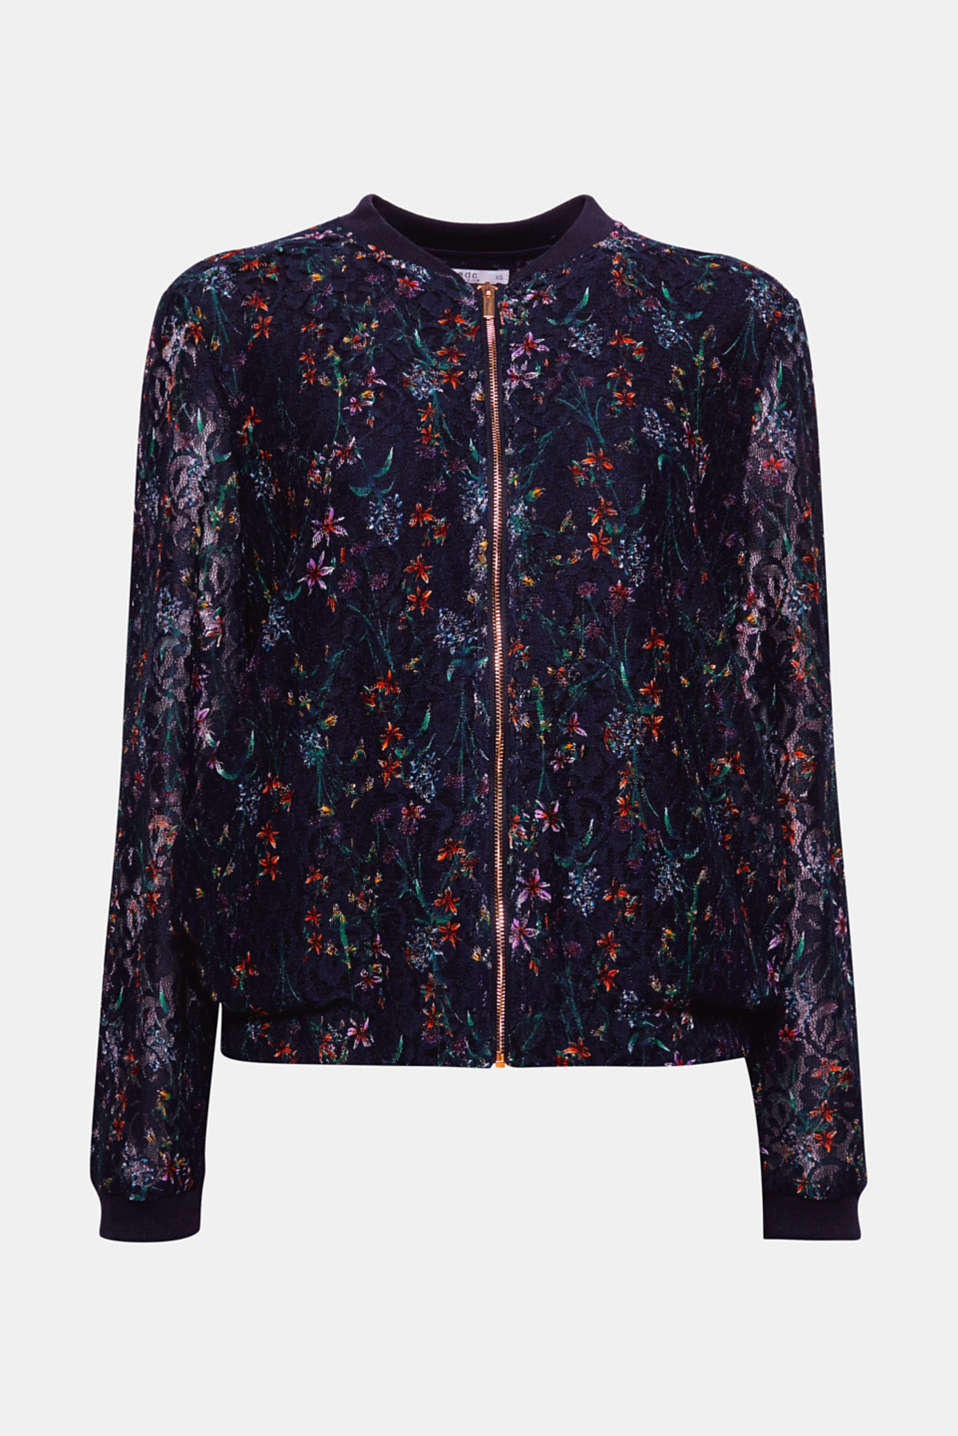 A sporty classic in a fresh design: This bomber jacket features a floral design and a semi-sheer finish.